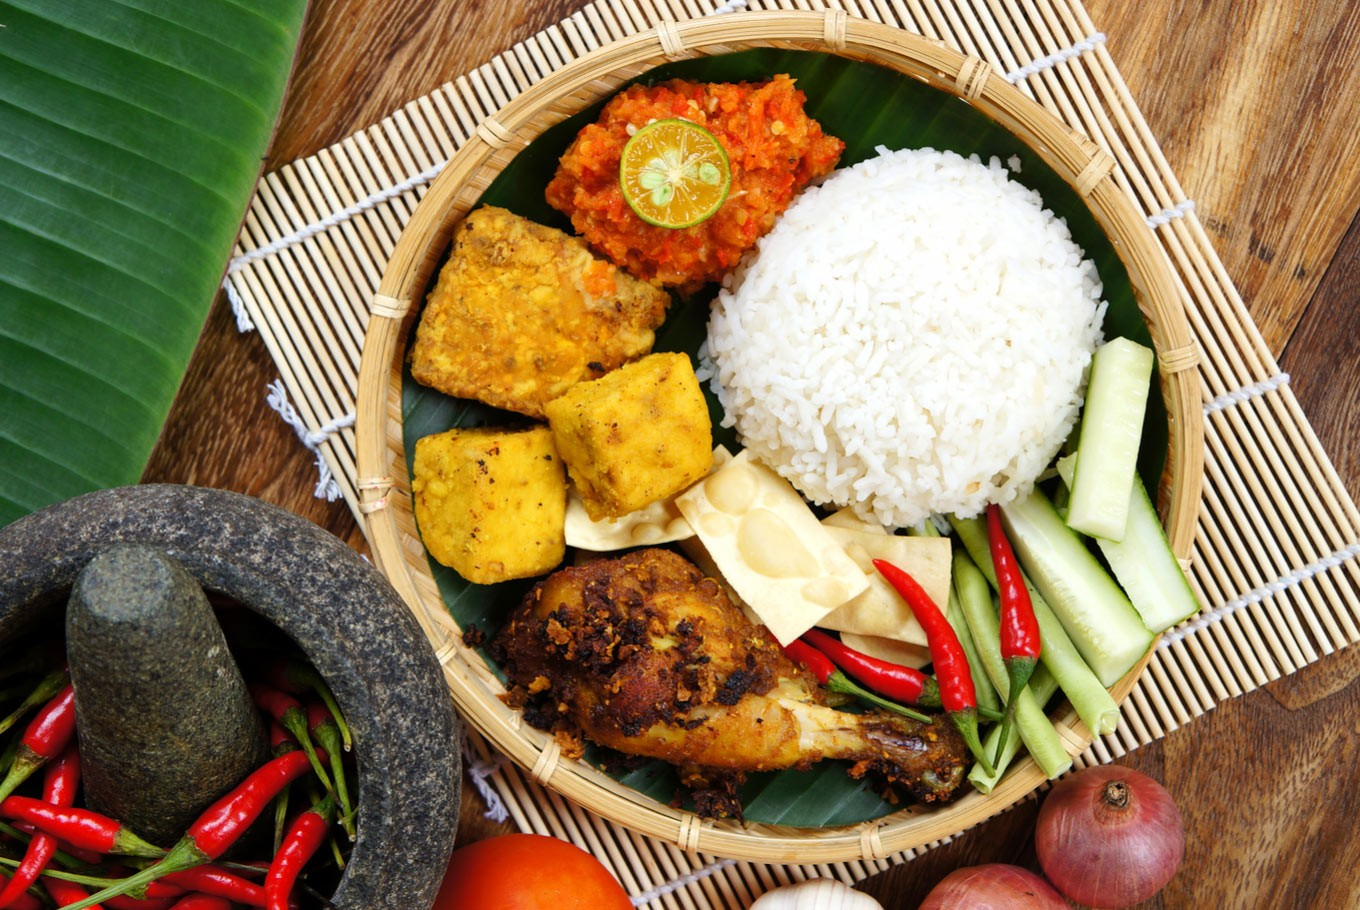 Online platform launched to support local food startups